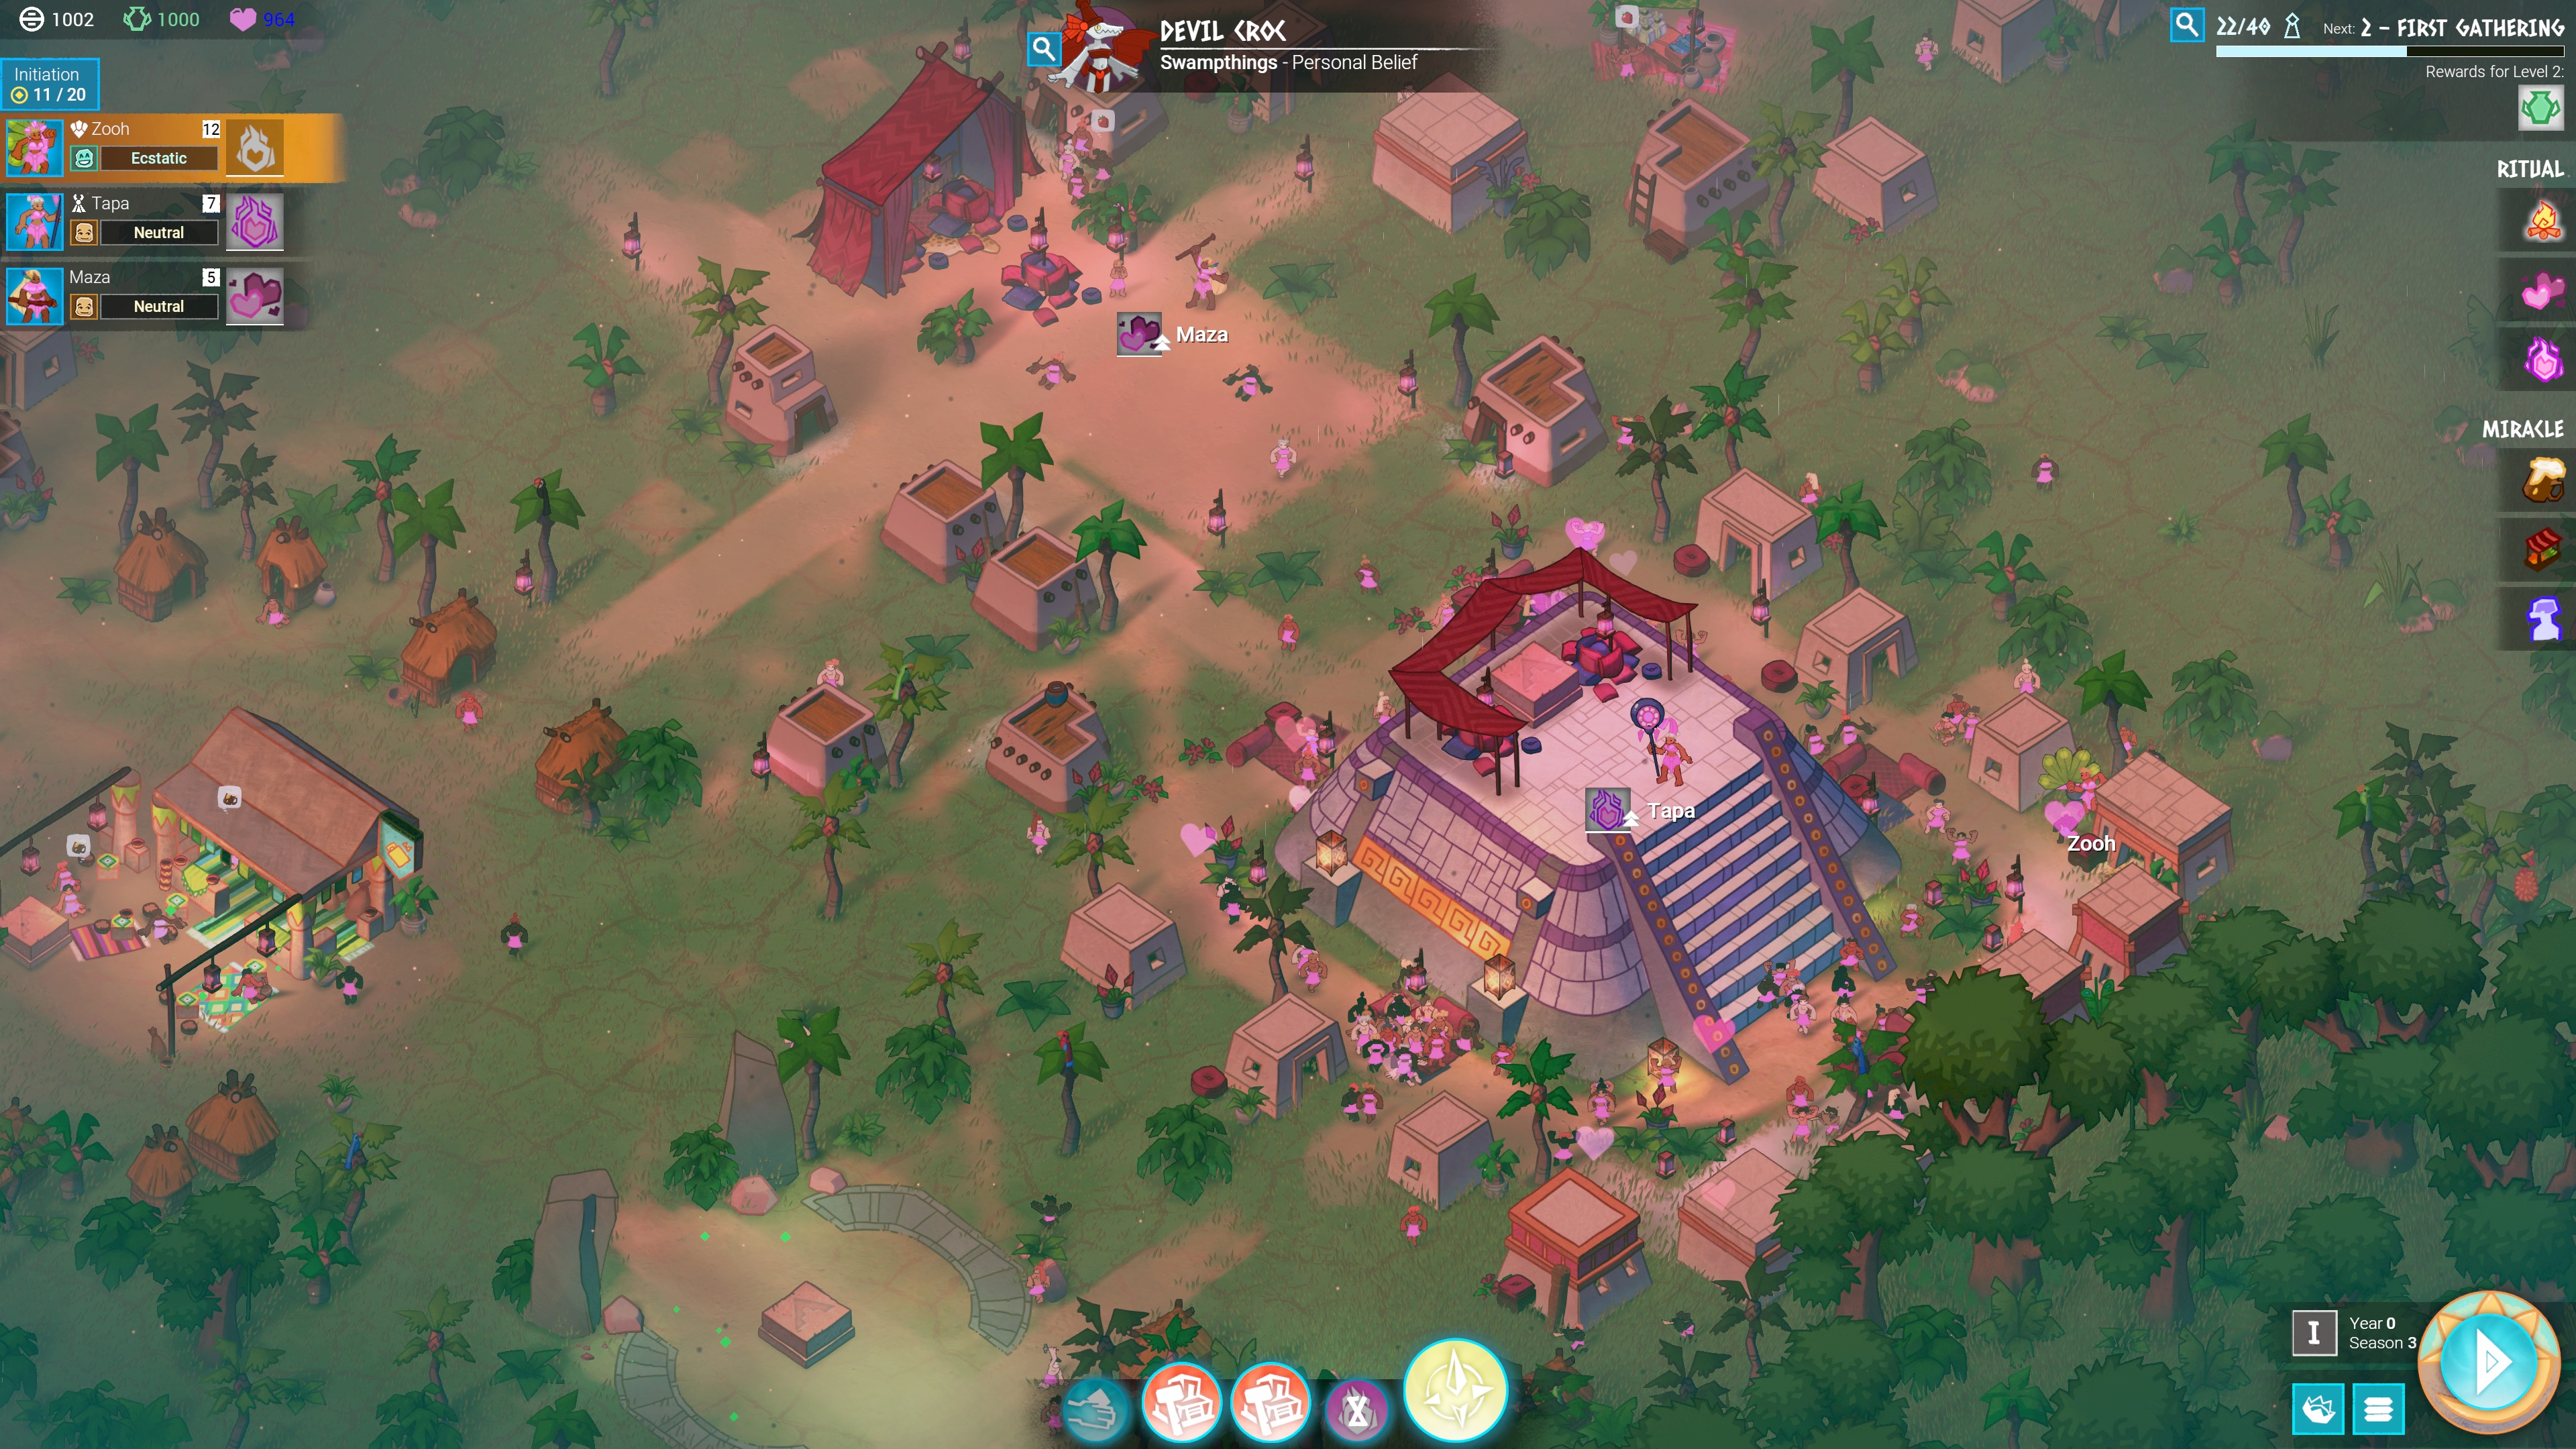 Religion sim Godhood promises the world, but delivers much less